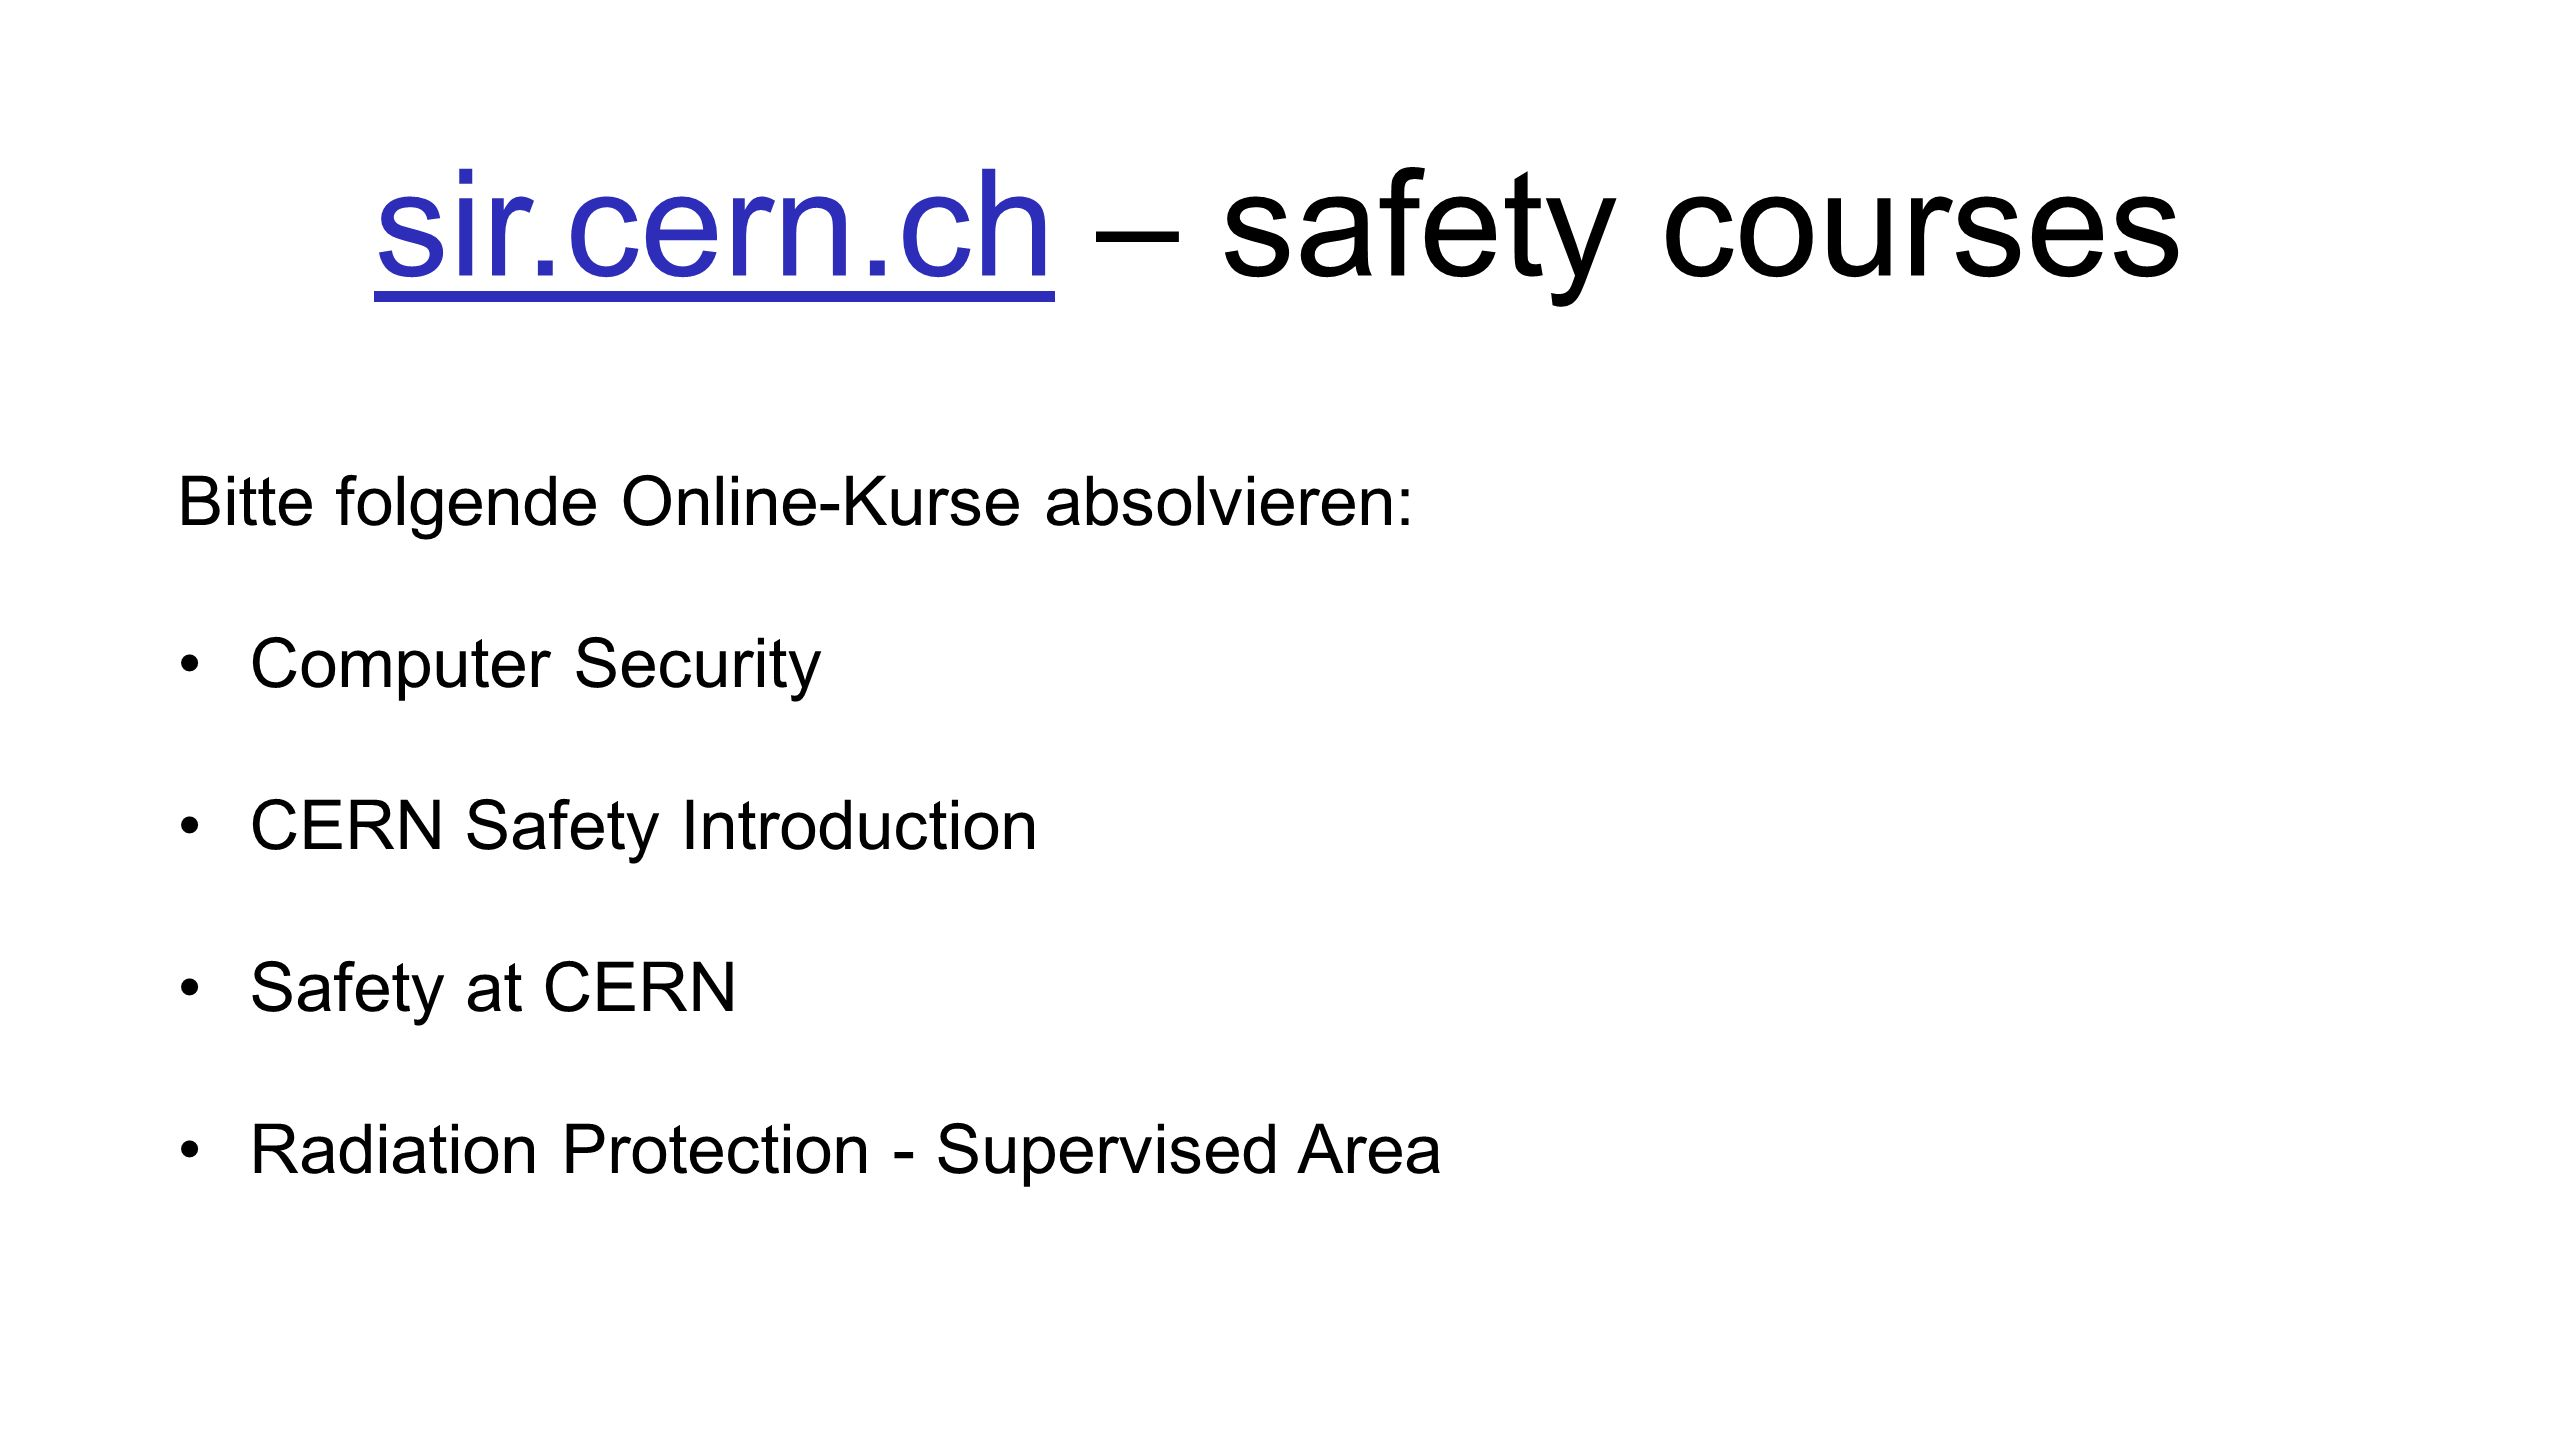 sir.cern.chsir.cern.ch – safety courses Bitte folgende Online-Kurse absolvieren: Computer Security CERN Safety Introduction Safety at CERN Radiation Protection - Supervised Area